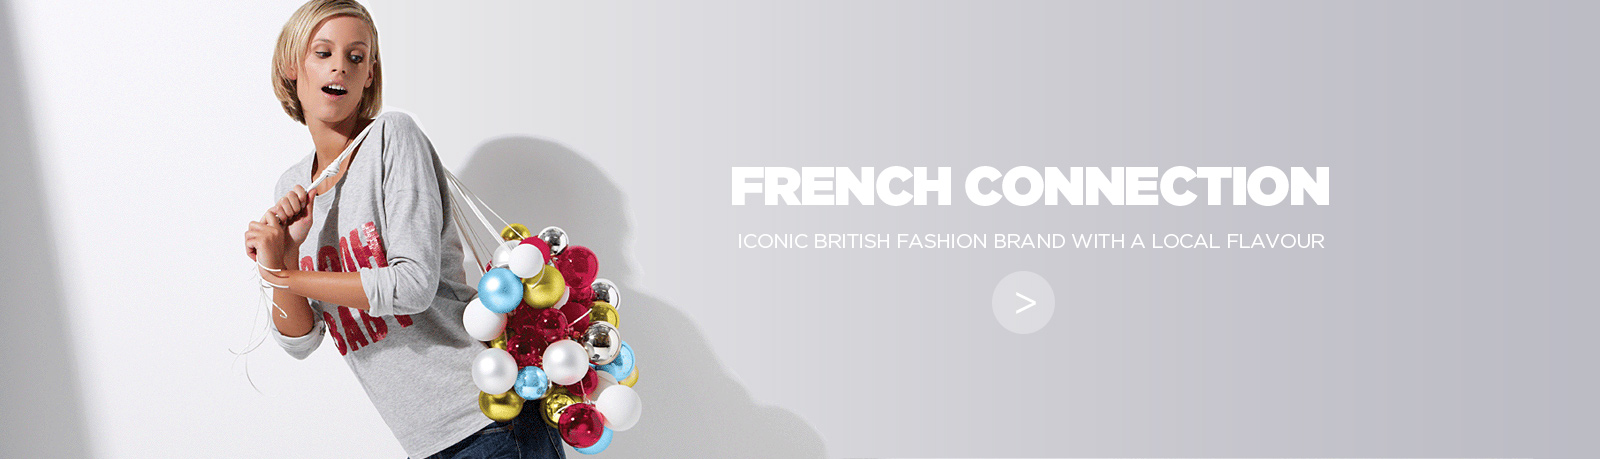 French Connection e-commerce website and mobile site built by NOW Solutions Digital Agency